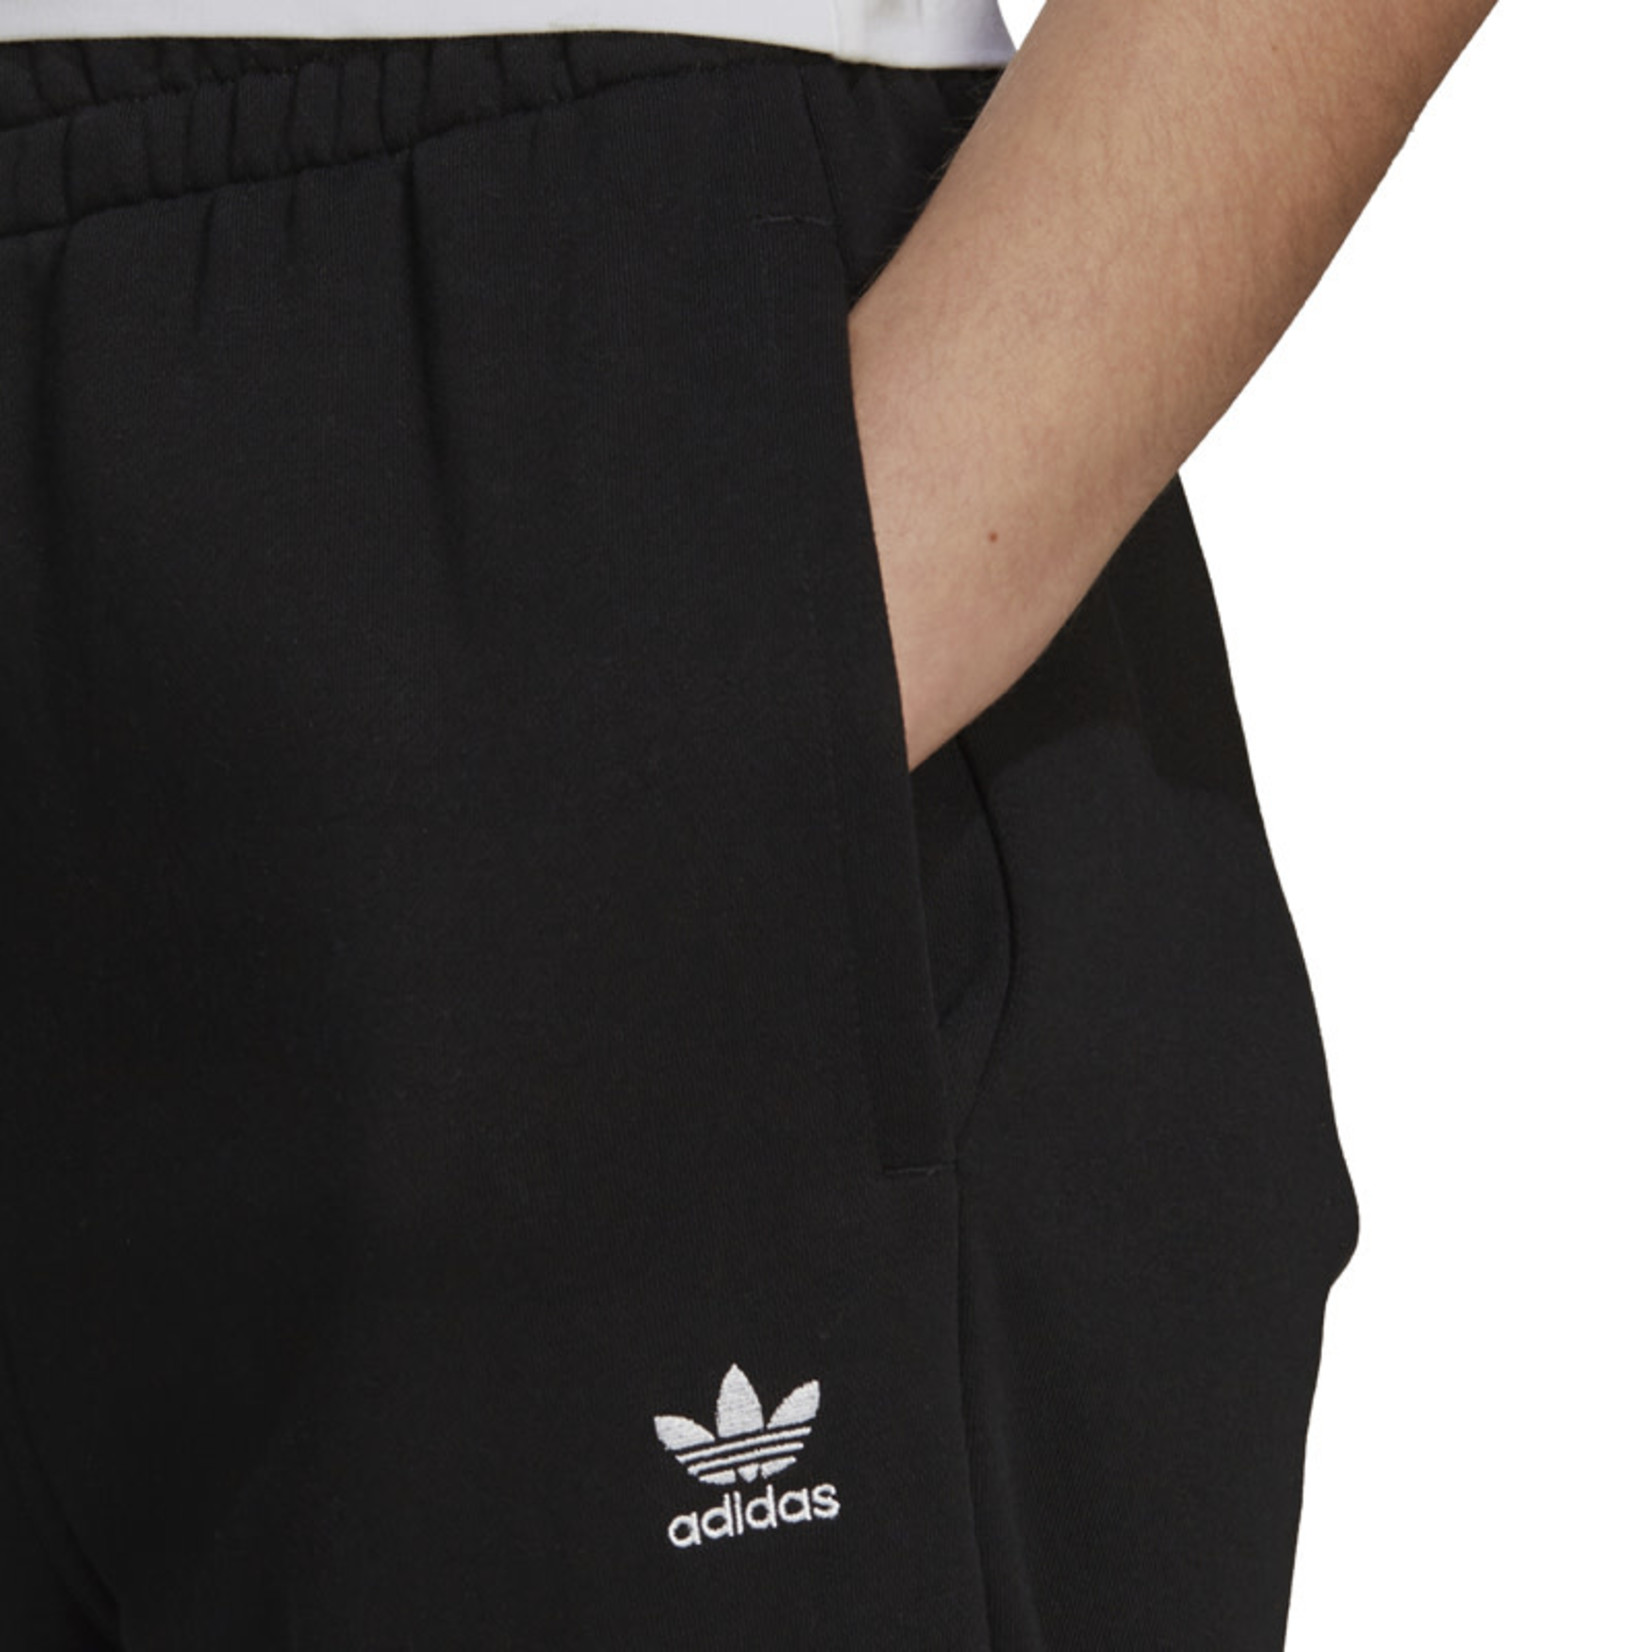 Adidas Adidas : Classic Relaxed Fit Fleece Jogger